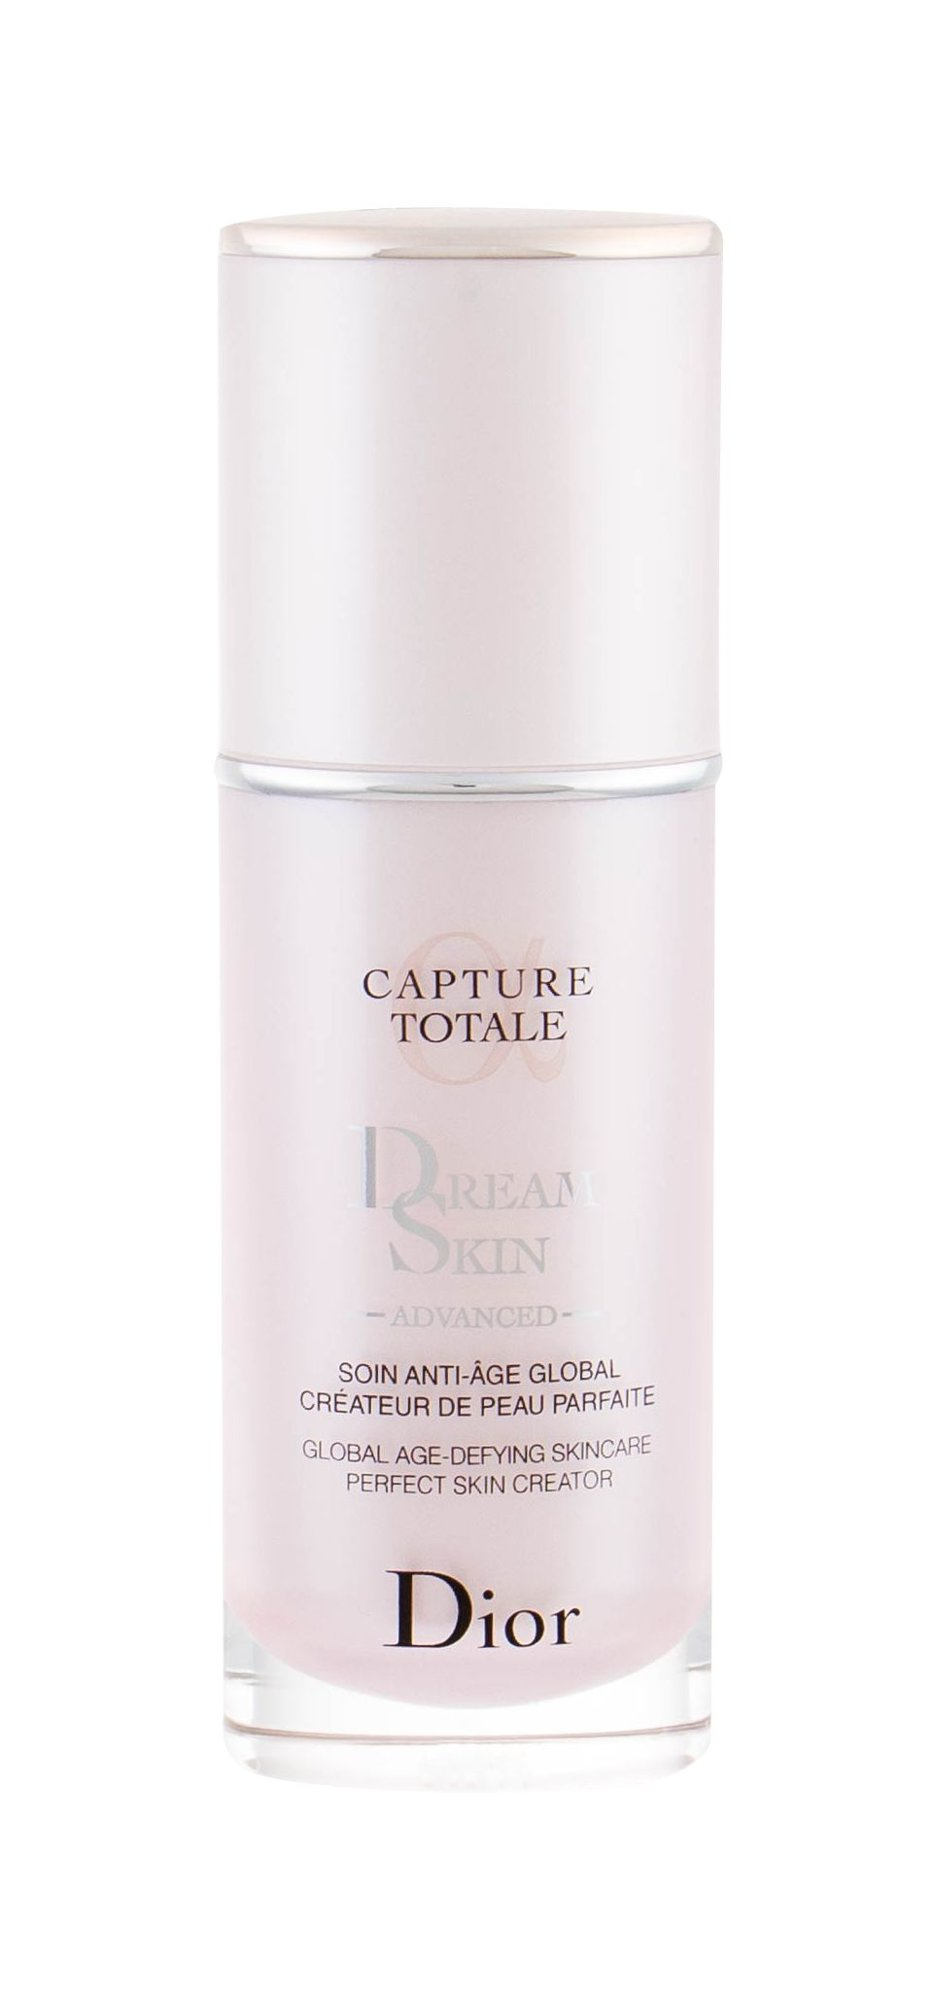 Christian Dior Capture Totale Skin Serum 30ml